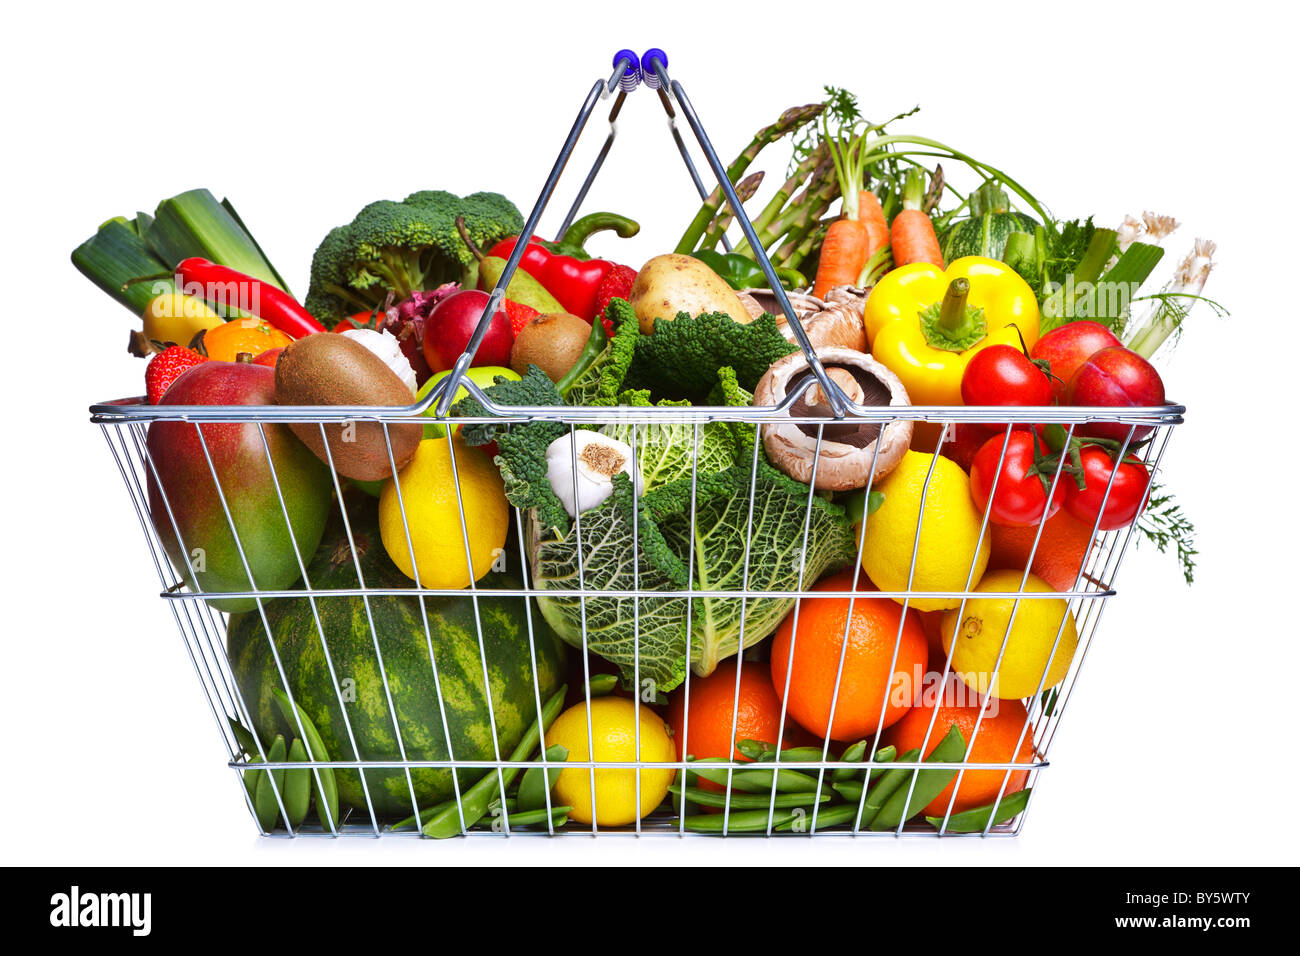 Photo of a wire shopping basket full of fresh fruit and vegetables, isolated on a white background. - Stock Image